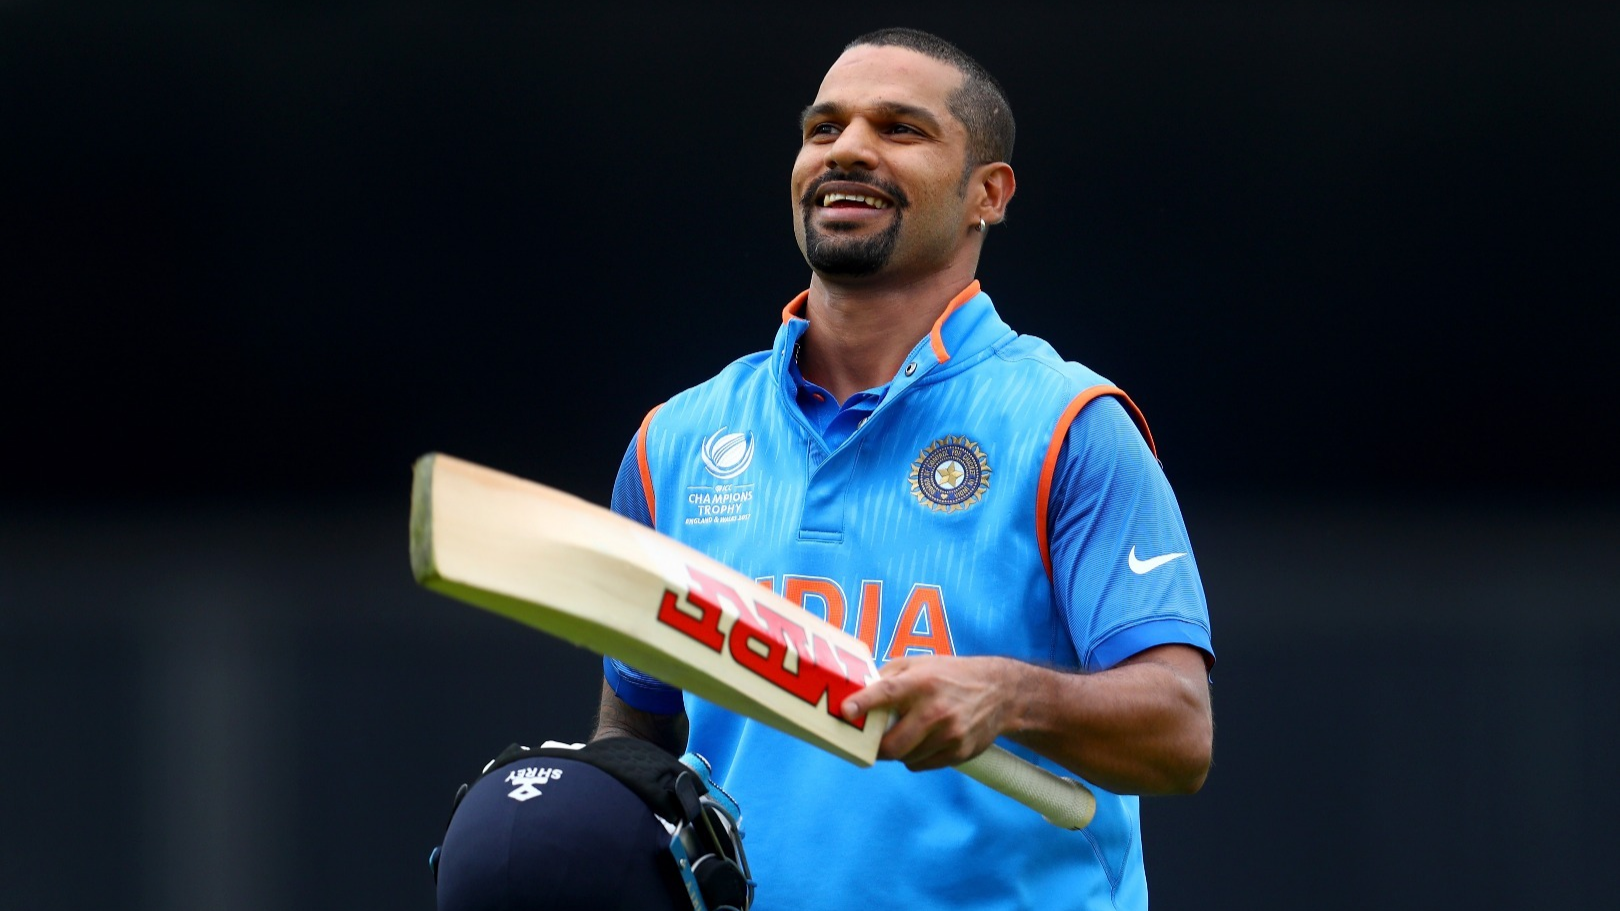 Want to keep increasing my appetite for runs, says Shikhar Dhawan